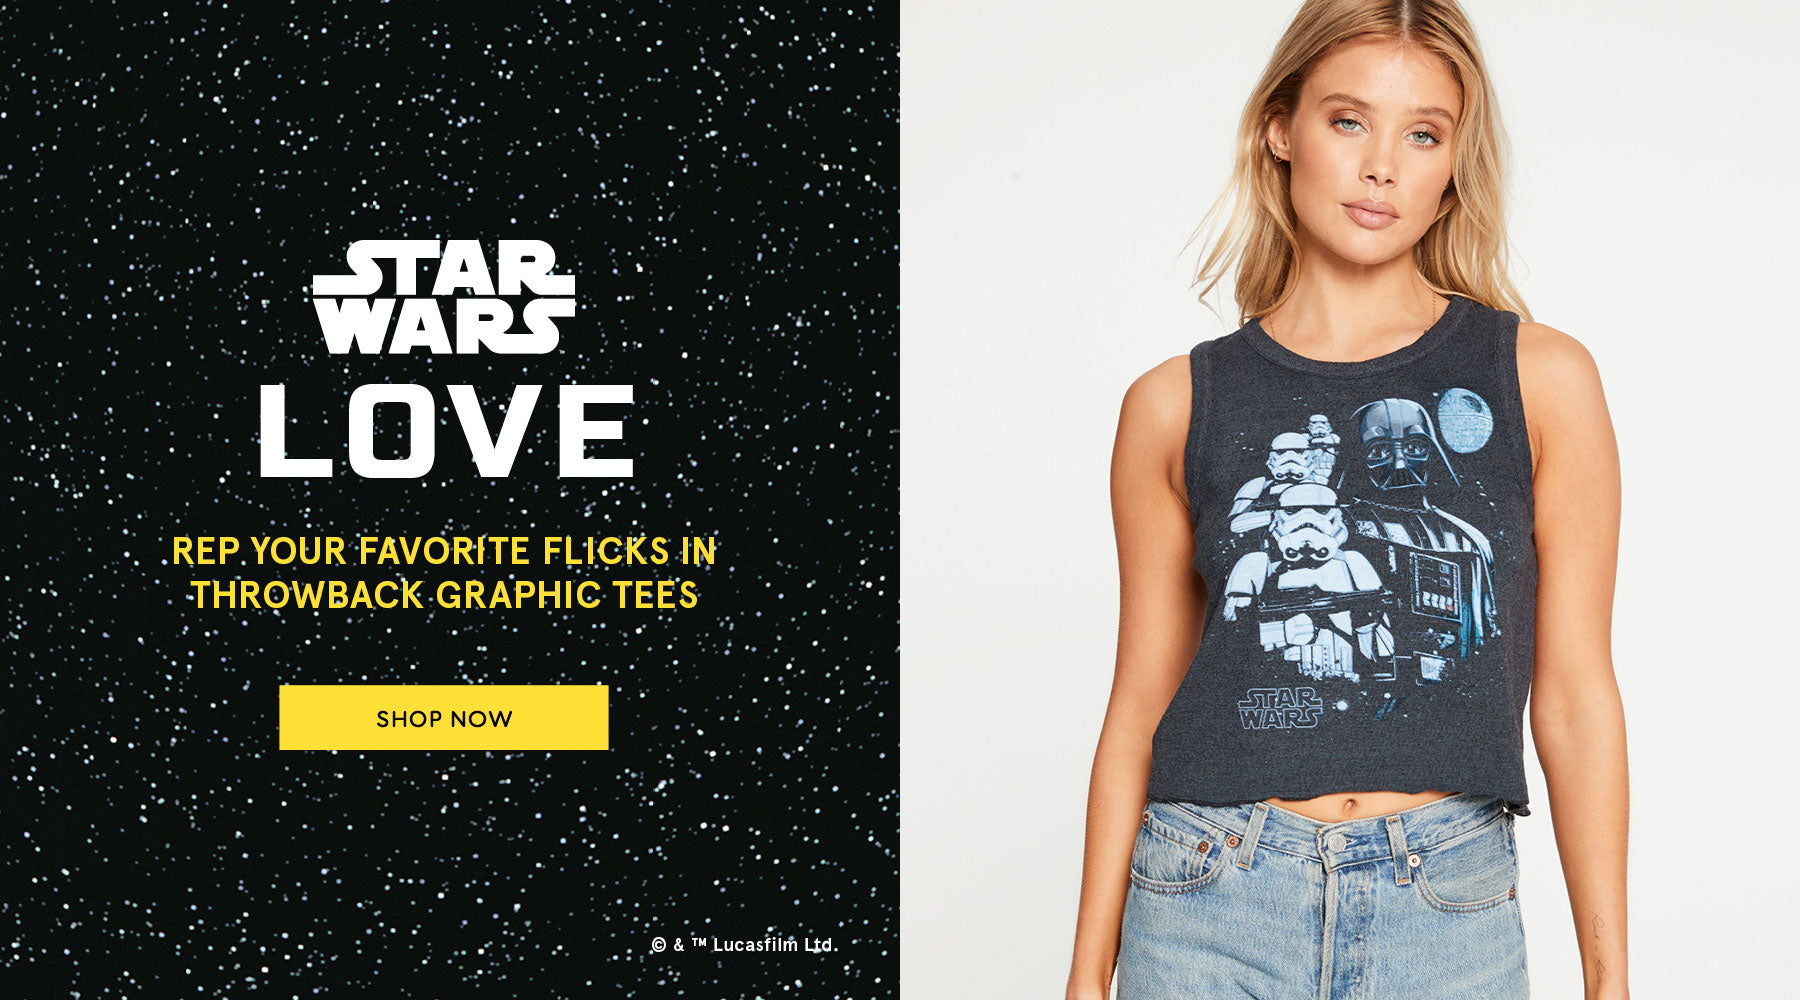 Get all nostalgic with the vintage-vibe graphics in our exclusive Star Wars™️ collection.